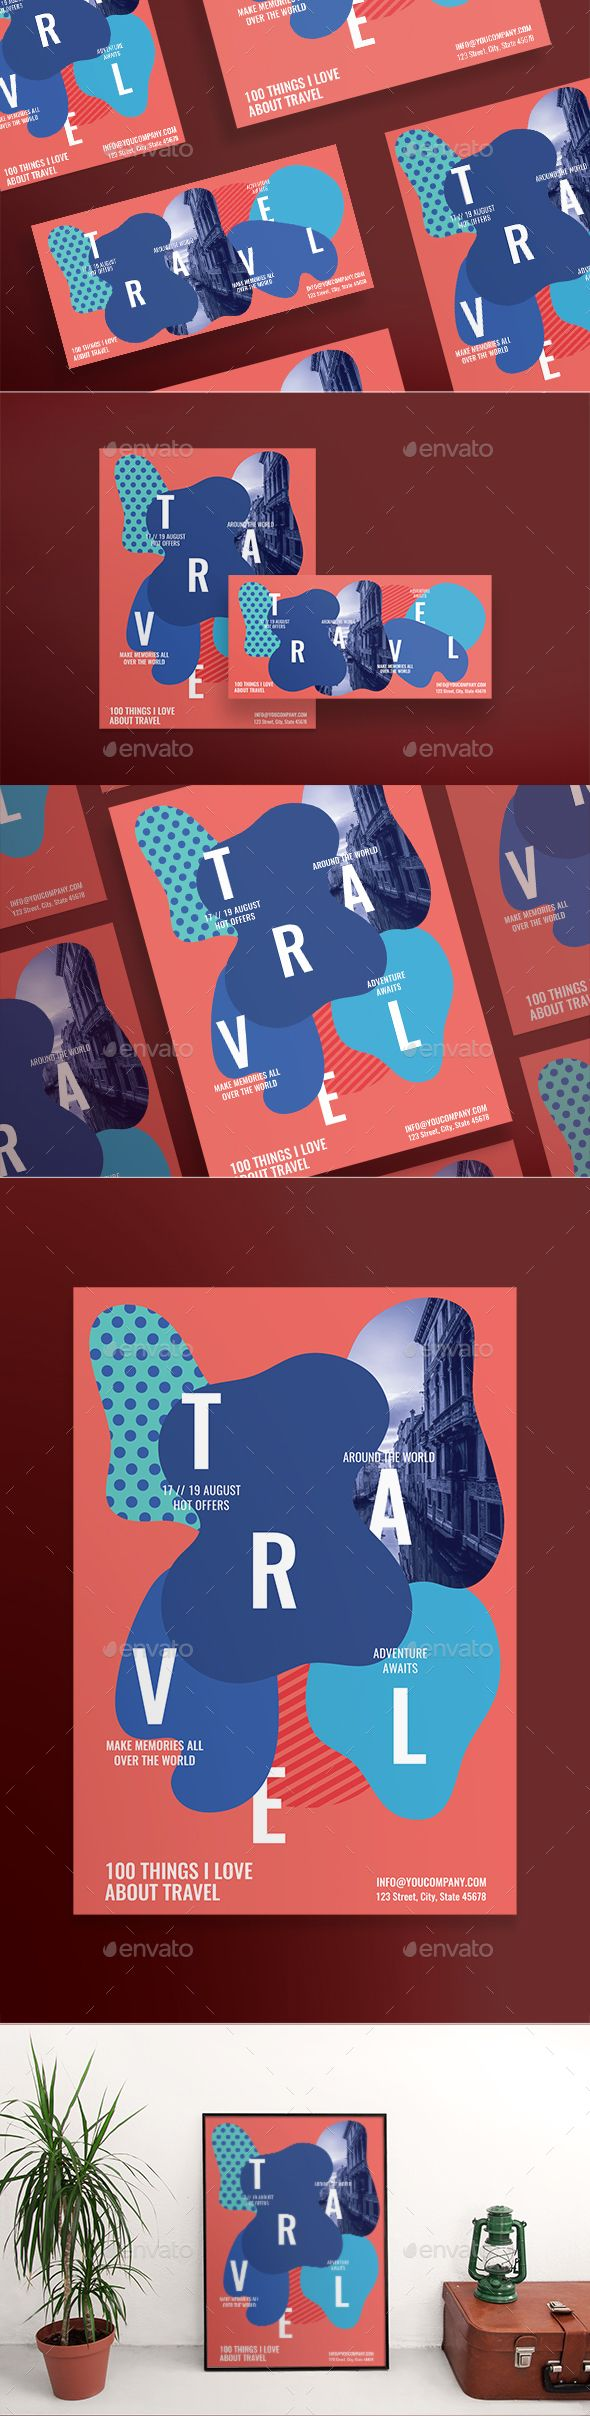 Travel Flyers — Photoshop PSD #a5 #vacations • Available here ➝ https://graphicriver.net/item/travel-flyers/20724398?ref=pxcr